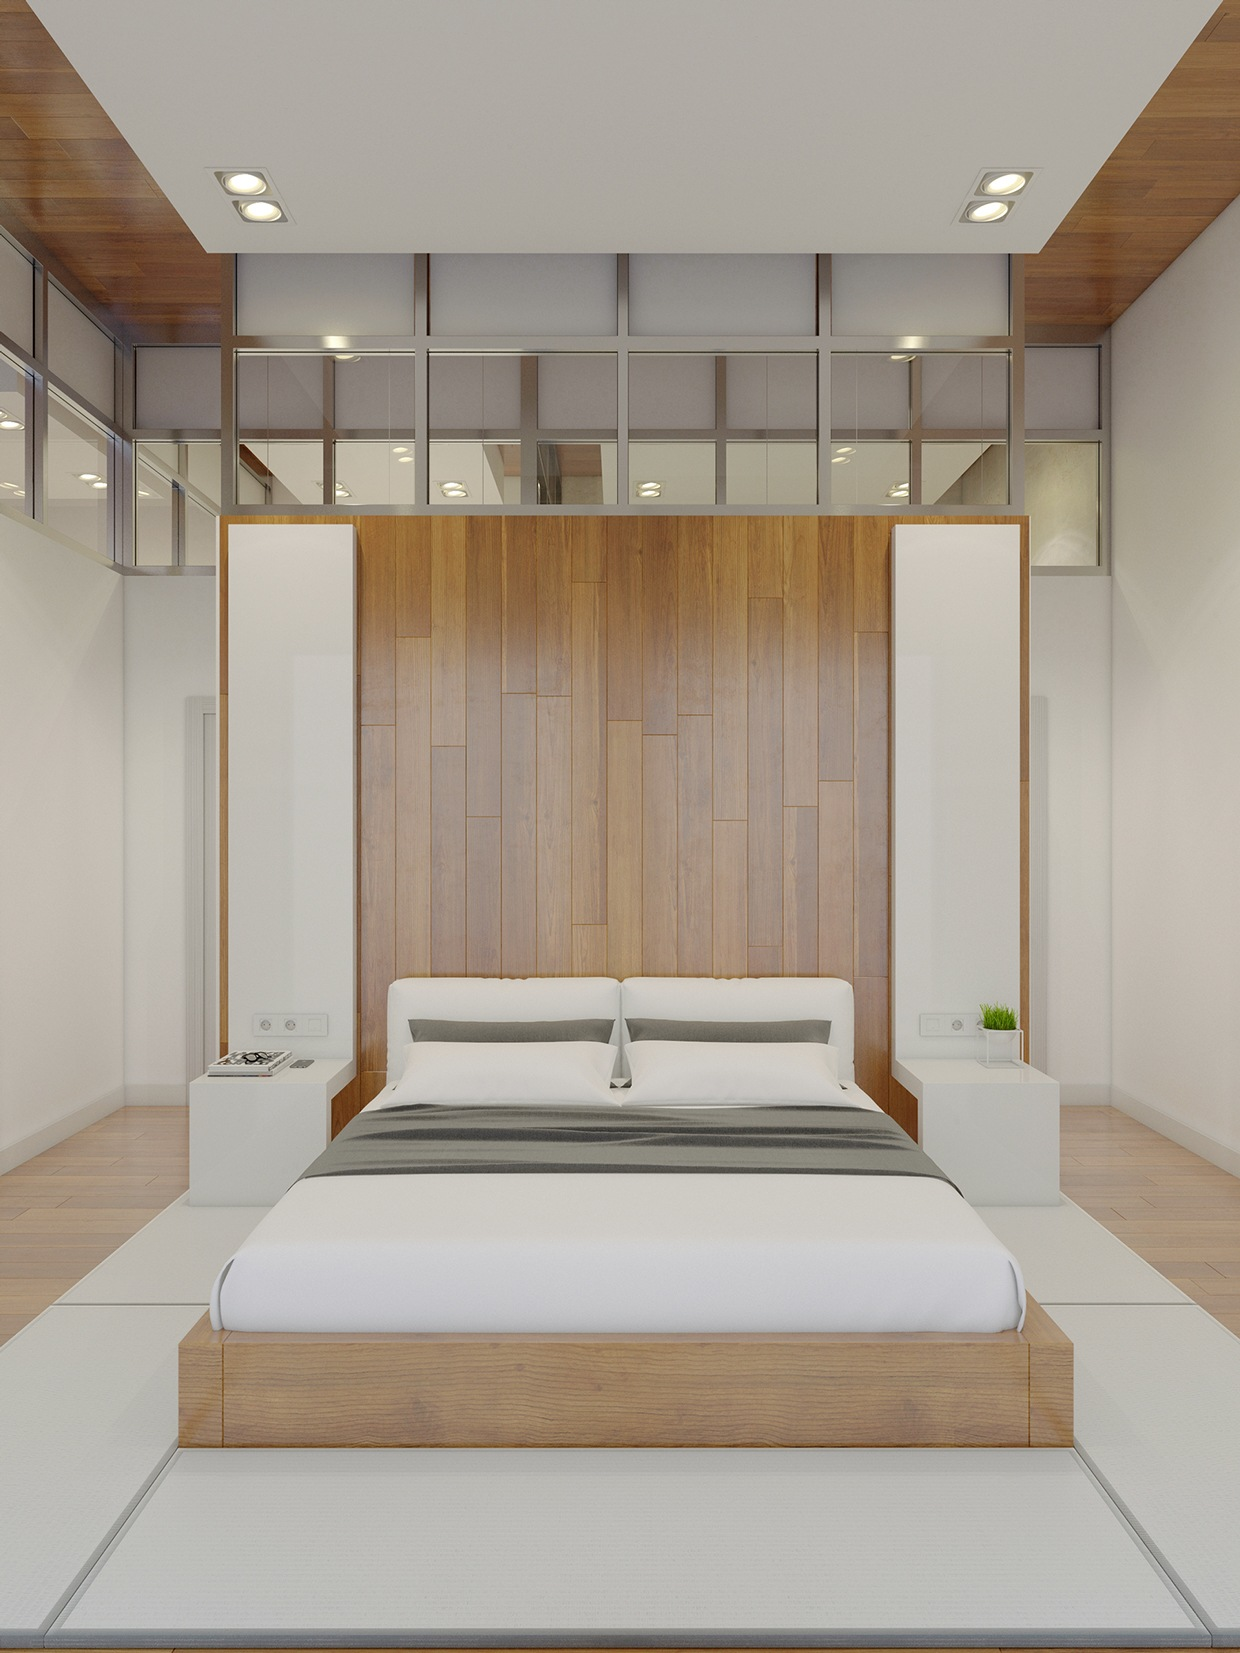 12 Stunning Bedroom Paint Ideas For Your Master Suite: High Rise Apartment With Stunning Minimalist Interior